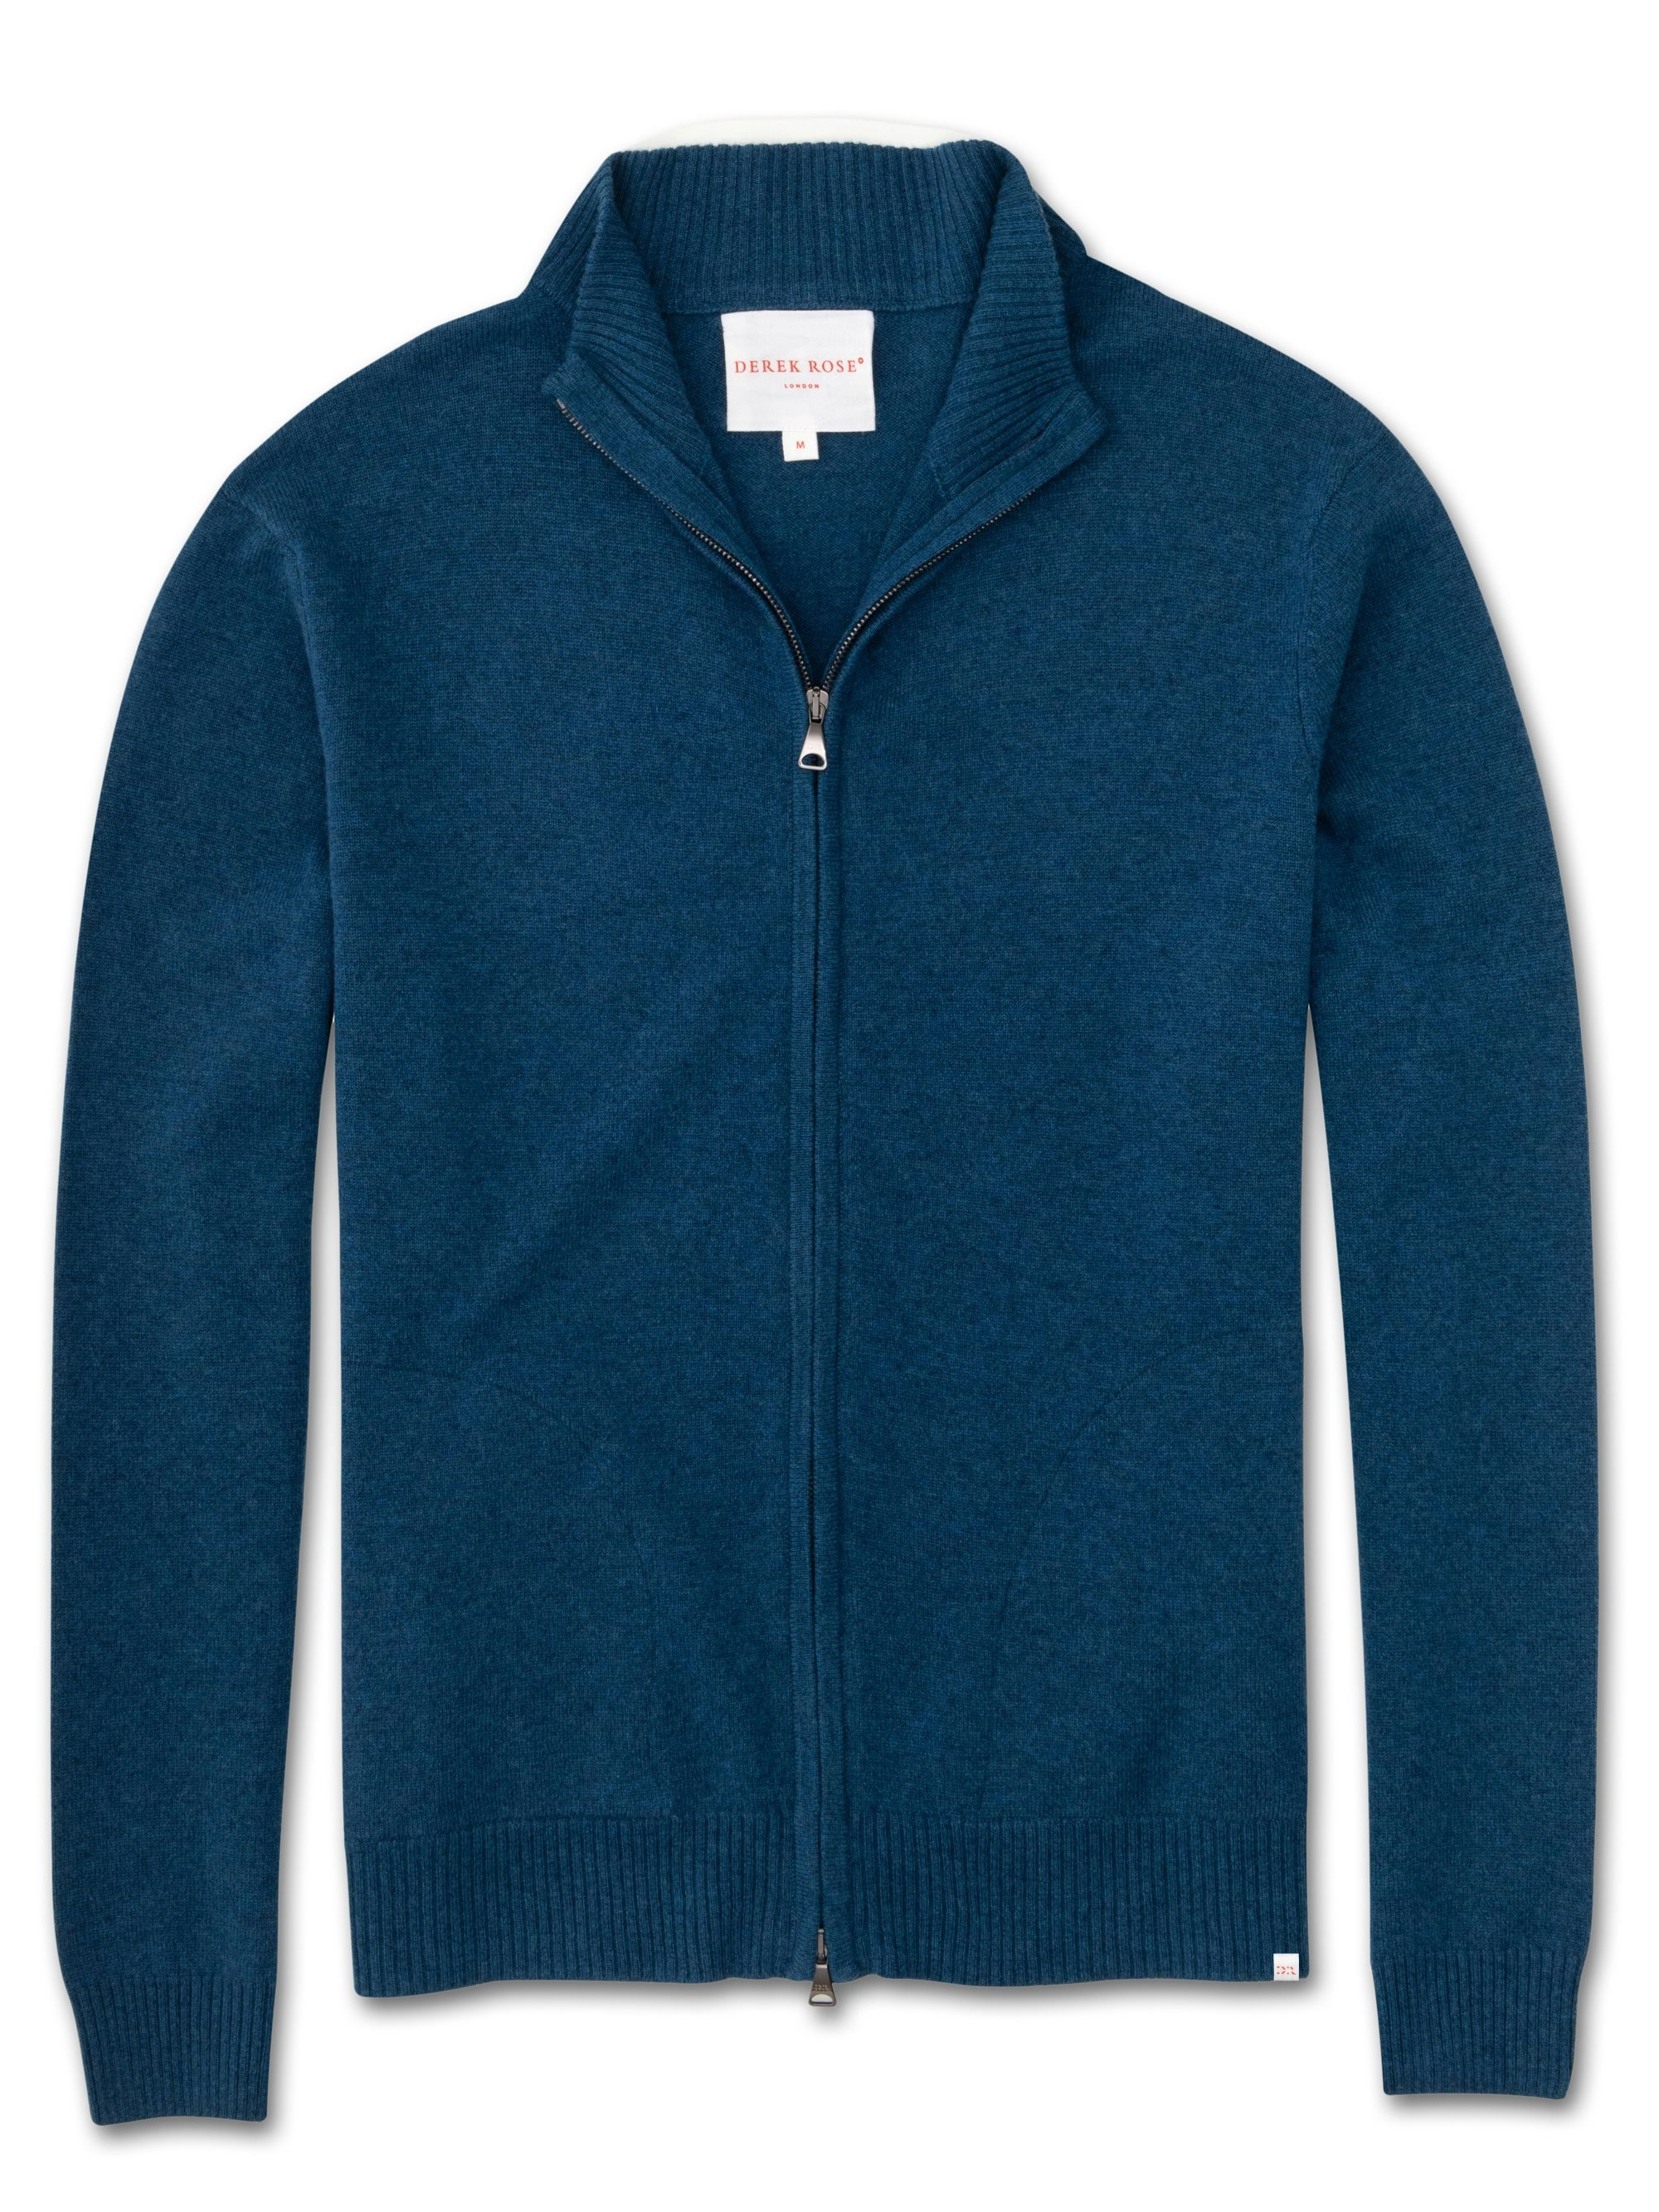 Men's Cashmere Zip-Up Top Finley Pure Cashmere Ocean